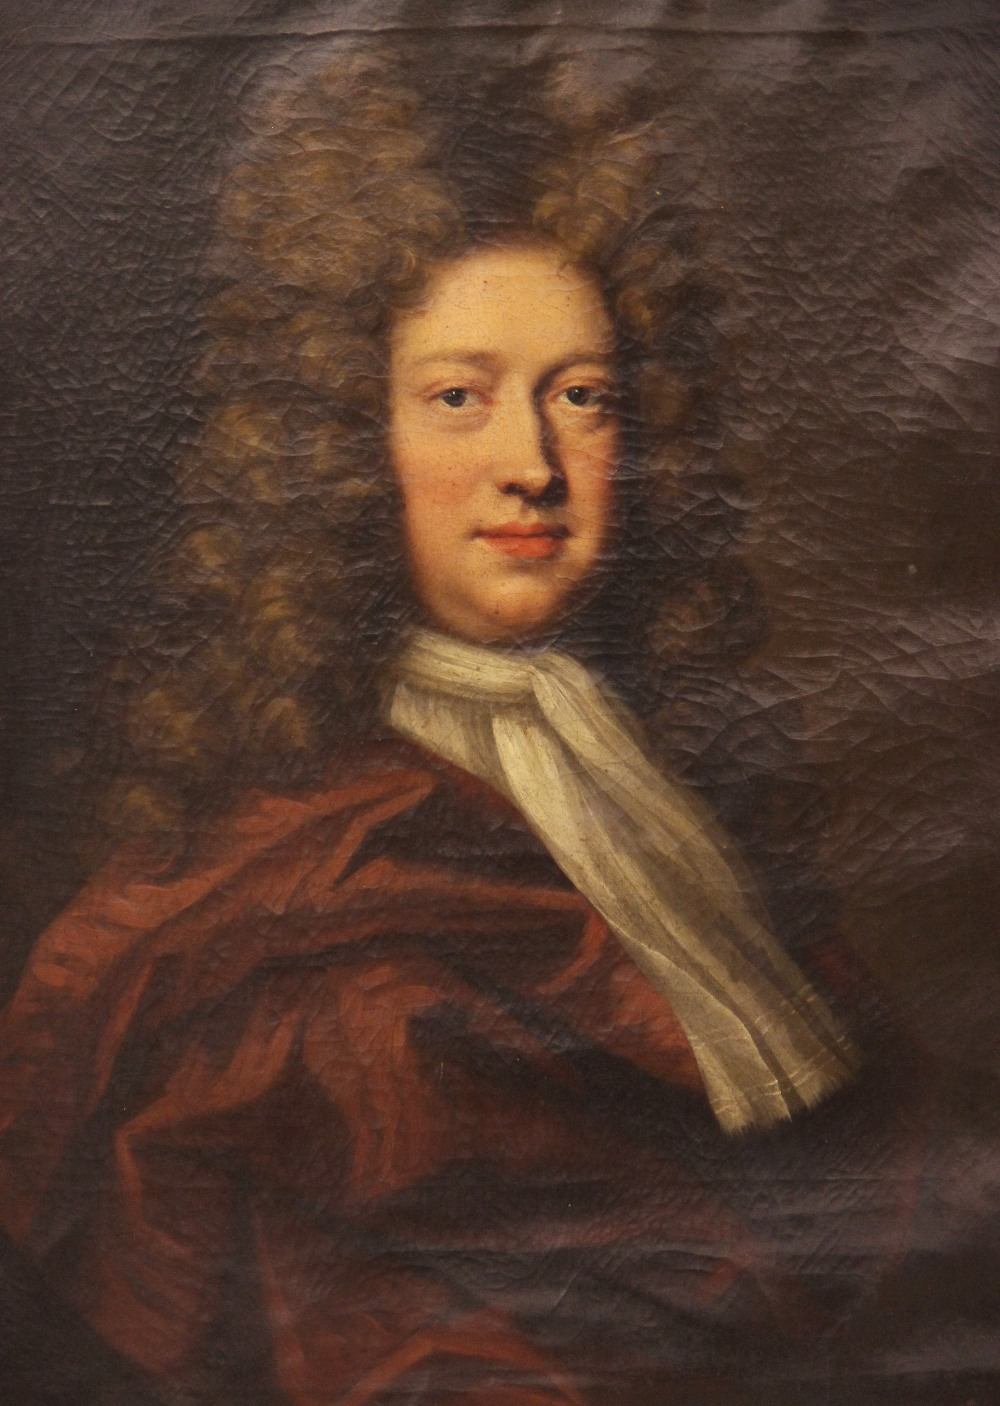 Circle of Michael Dahl (1659-1743), Portrait of George Kenyon half length wearing a red cloak and - Image 2 of 6